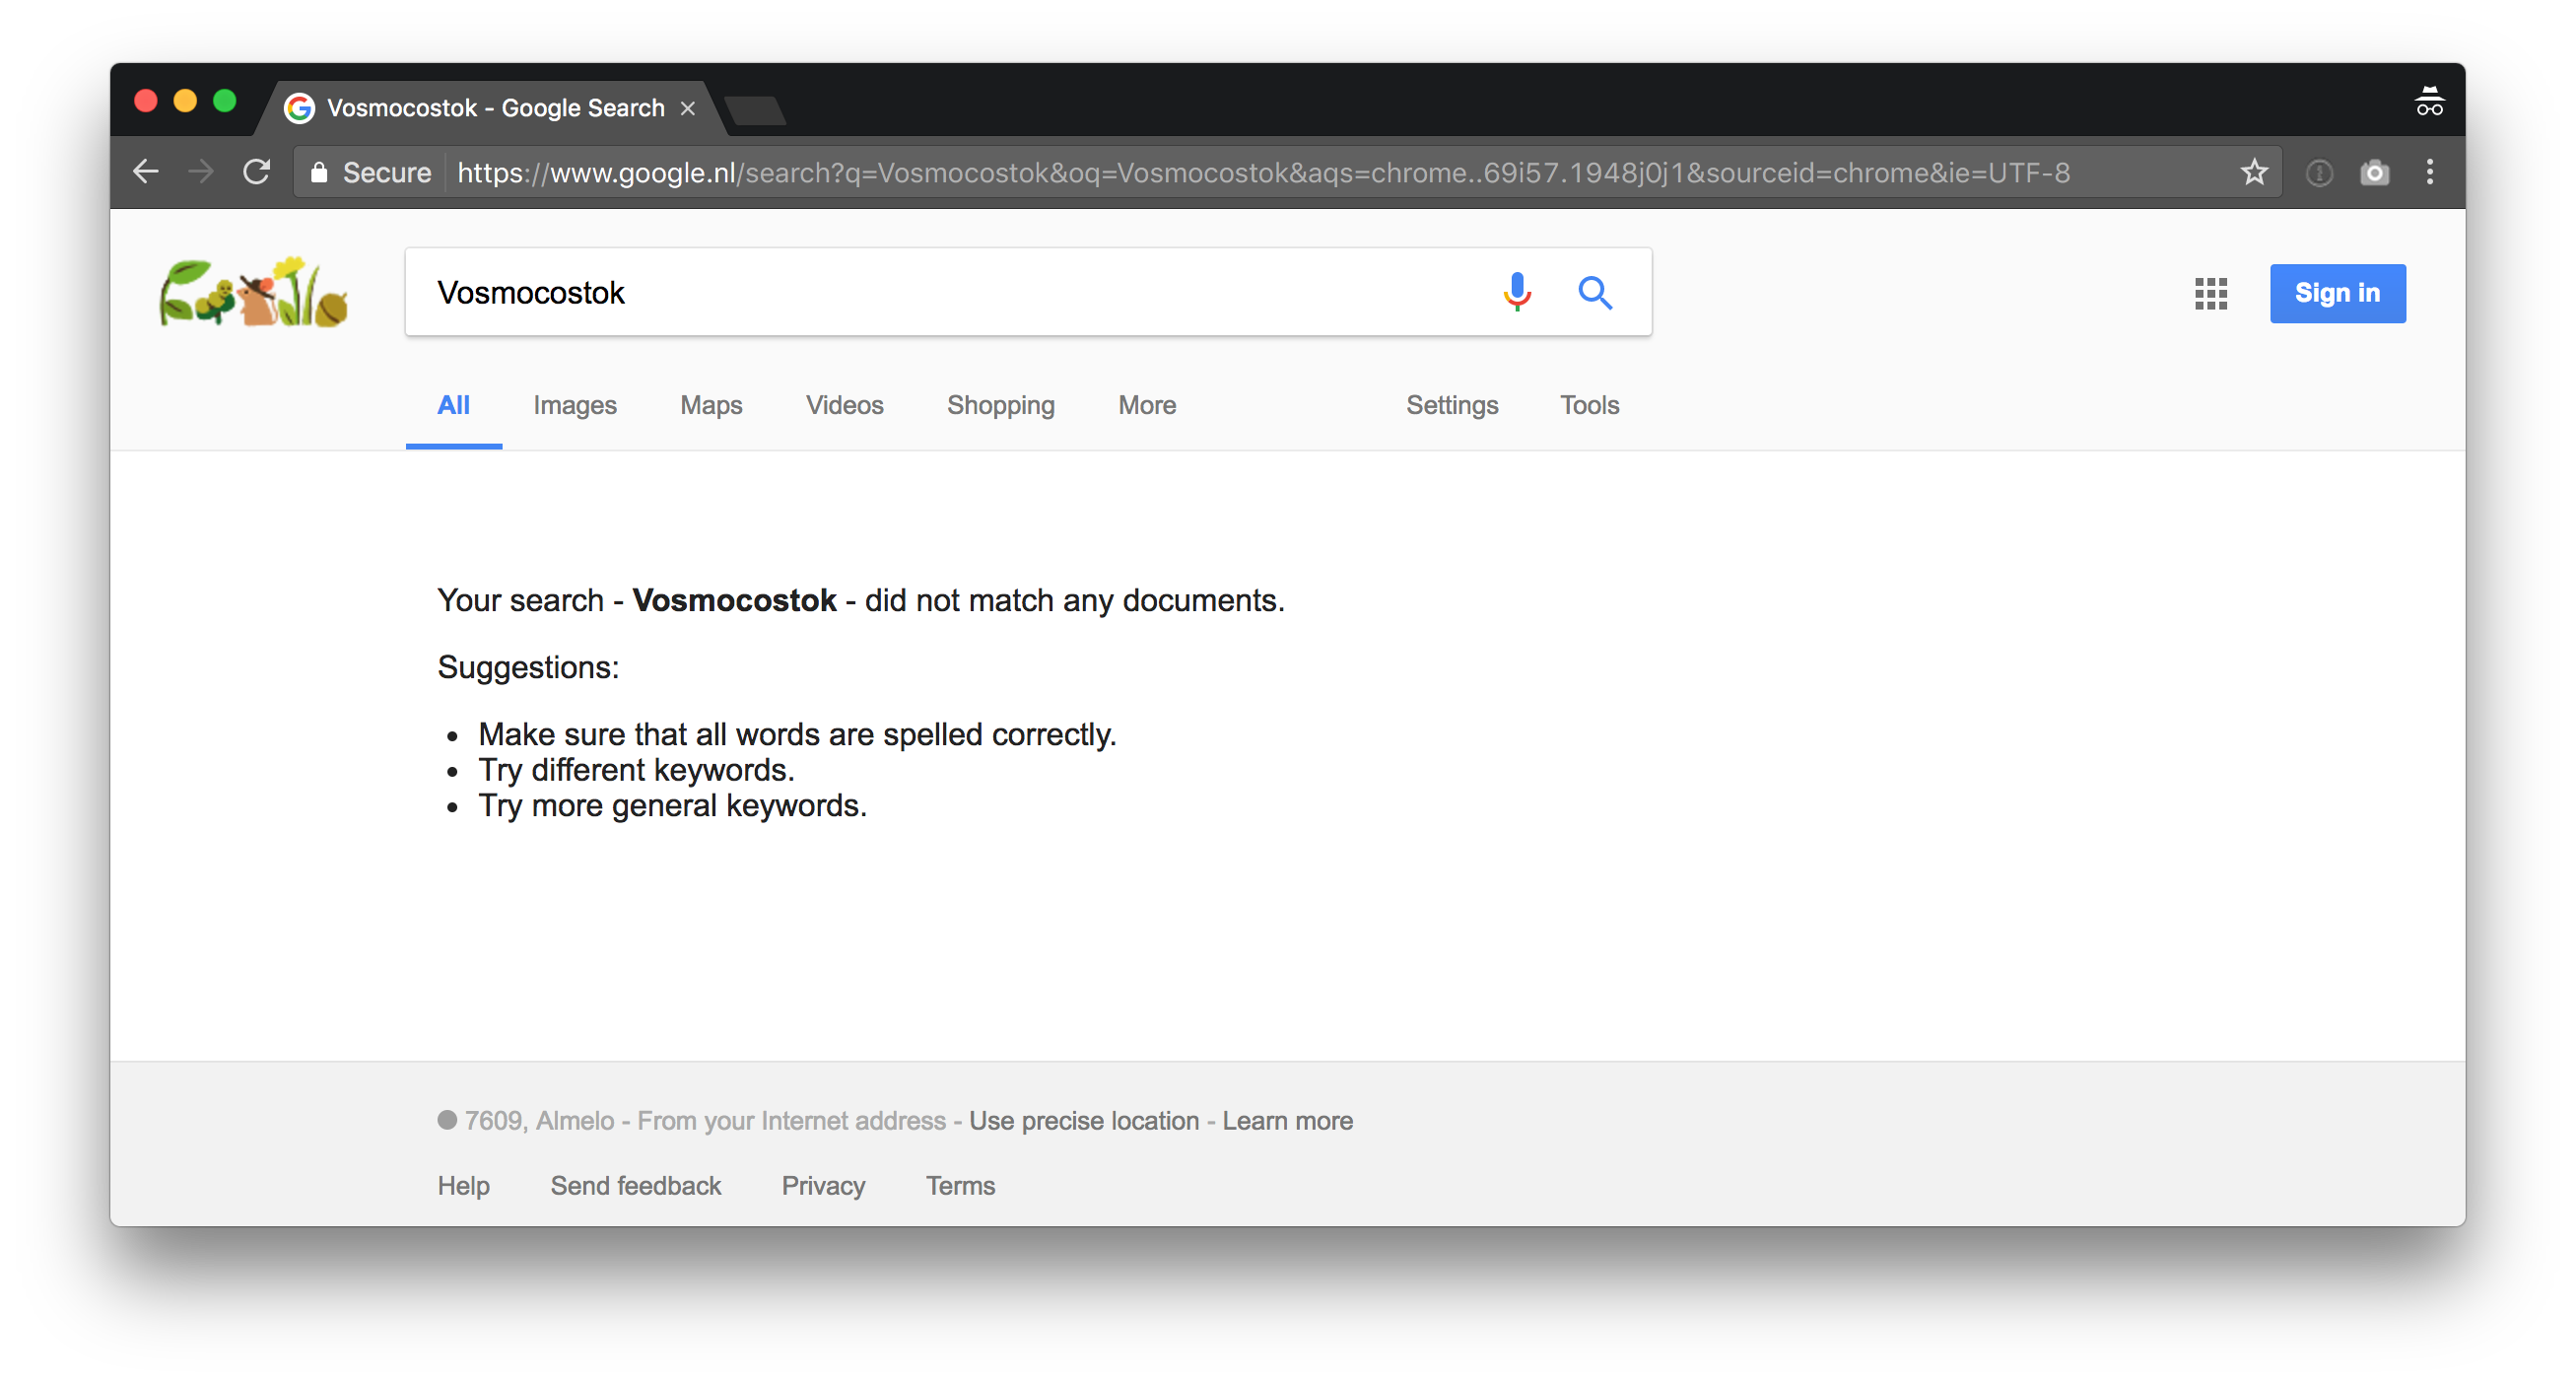 Google no results found for keyword